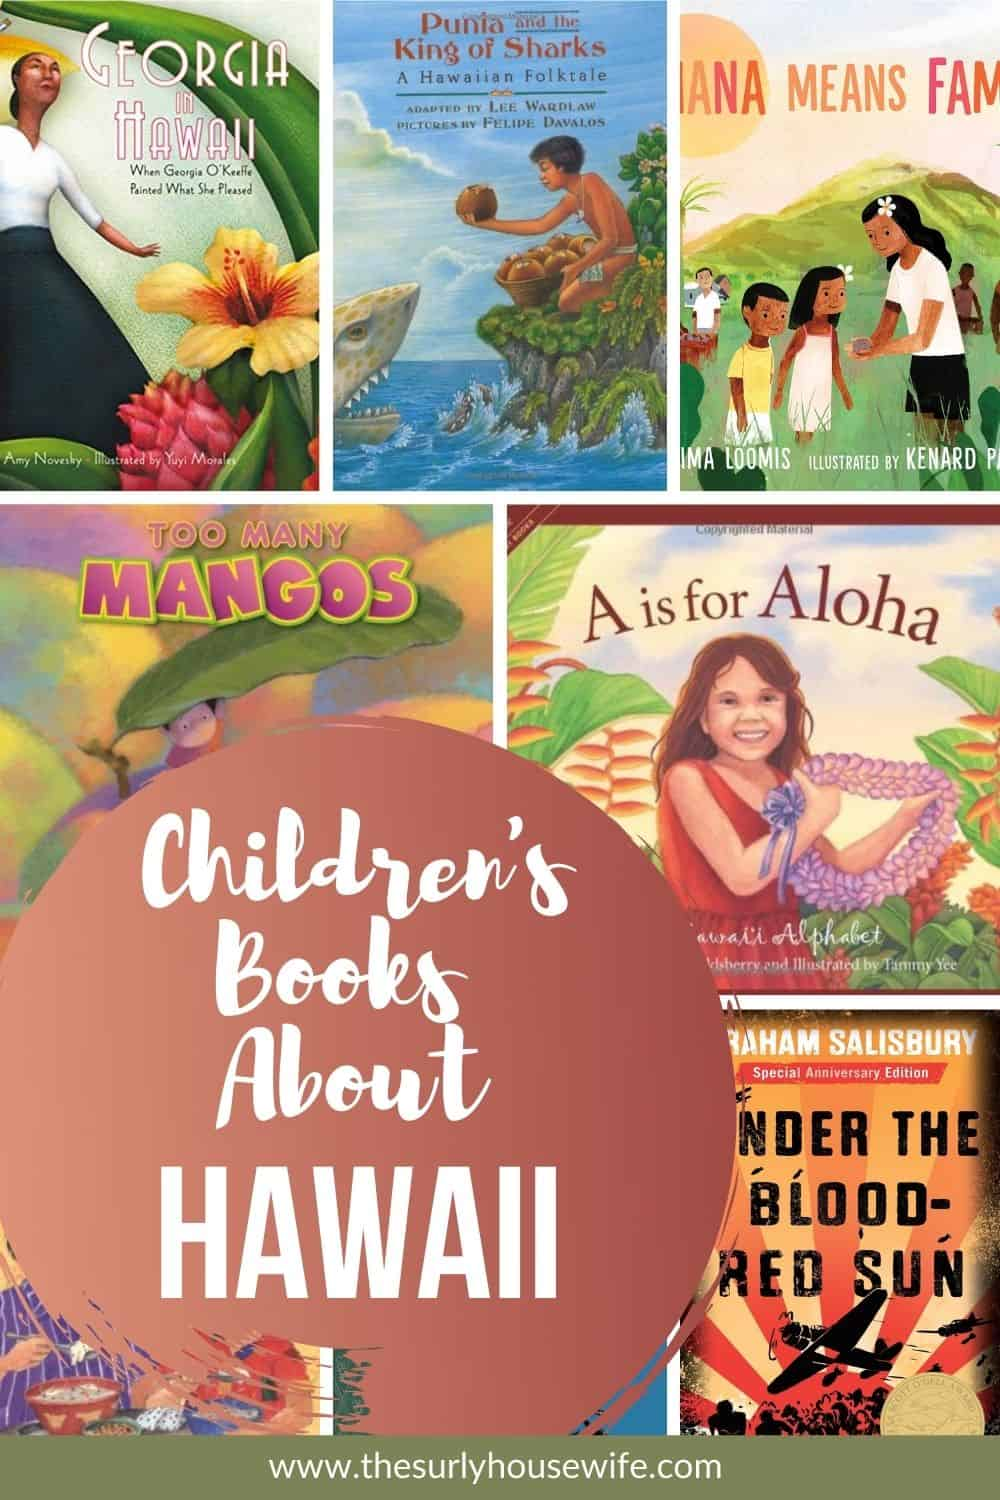 Need children's books about Hawaii? This book list includes picture books about Hawaii and chapter books set in Hawaii.